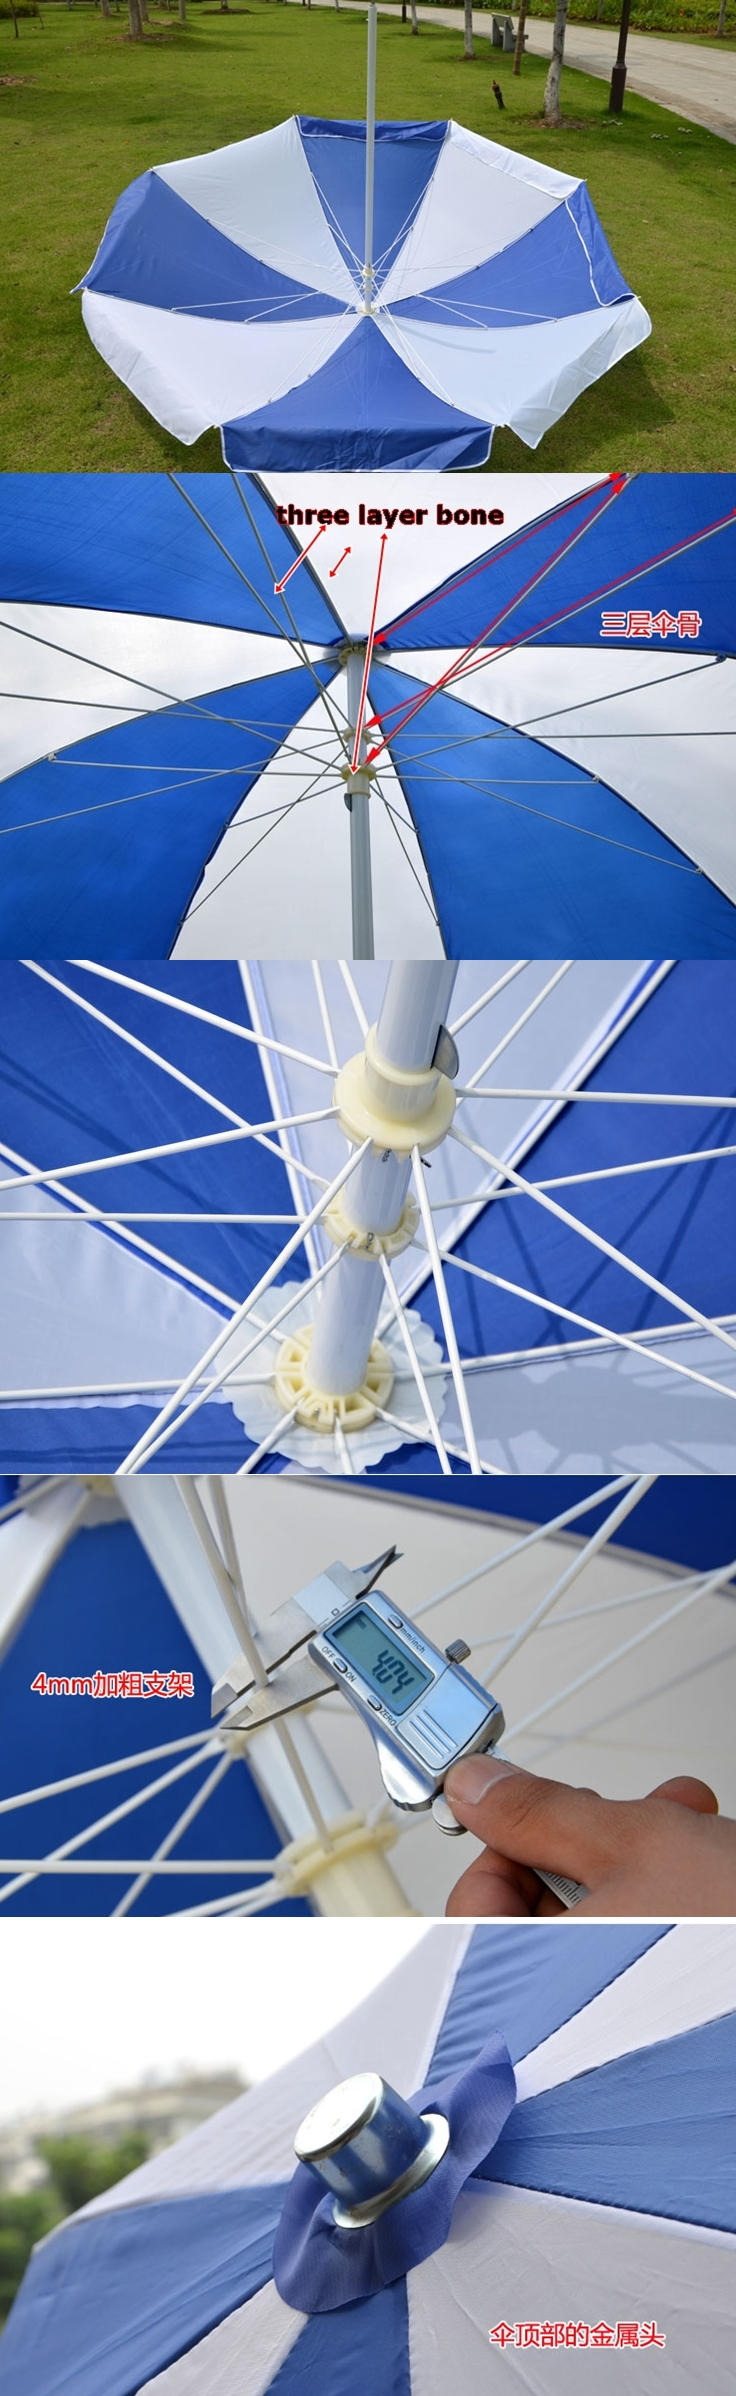 out door uv  meter giant umbrella come with stand: metre giant umbrella